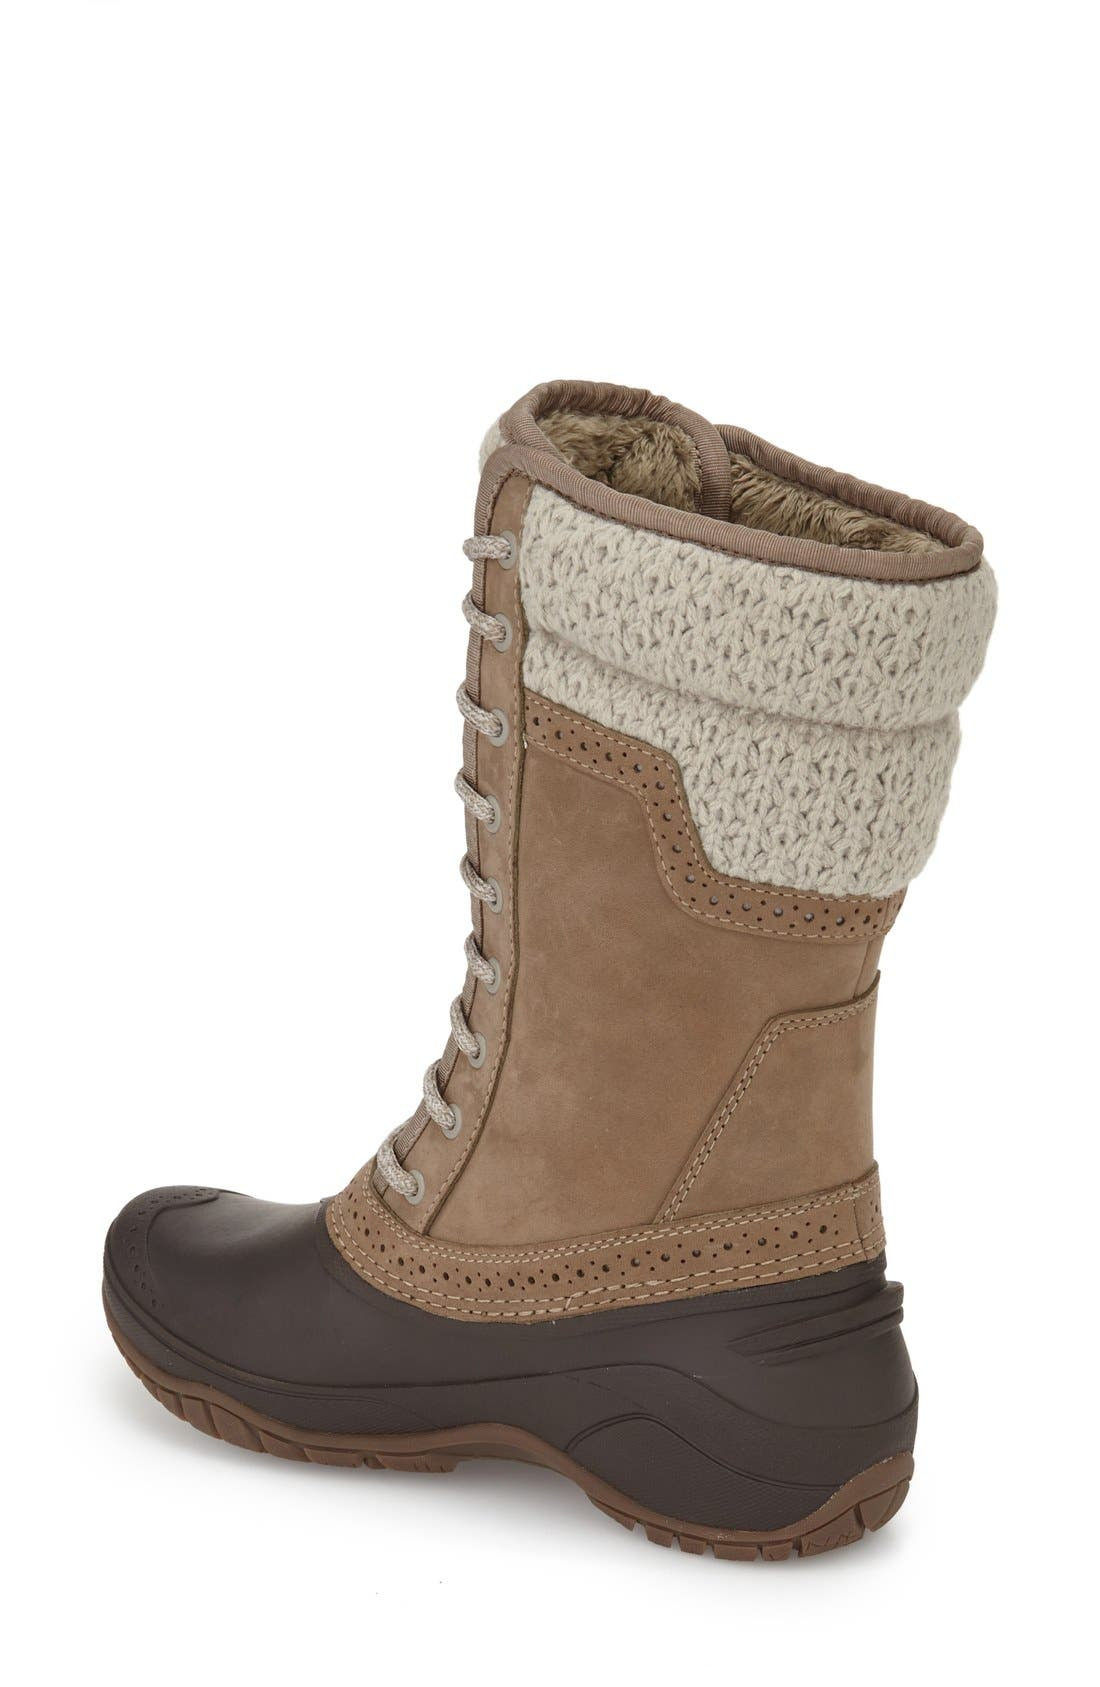 Alternate Image 2  - The North Face Shellista Waterproof Insulated Snow Boot (Women)